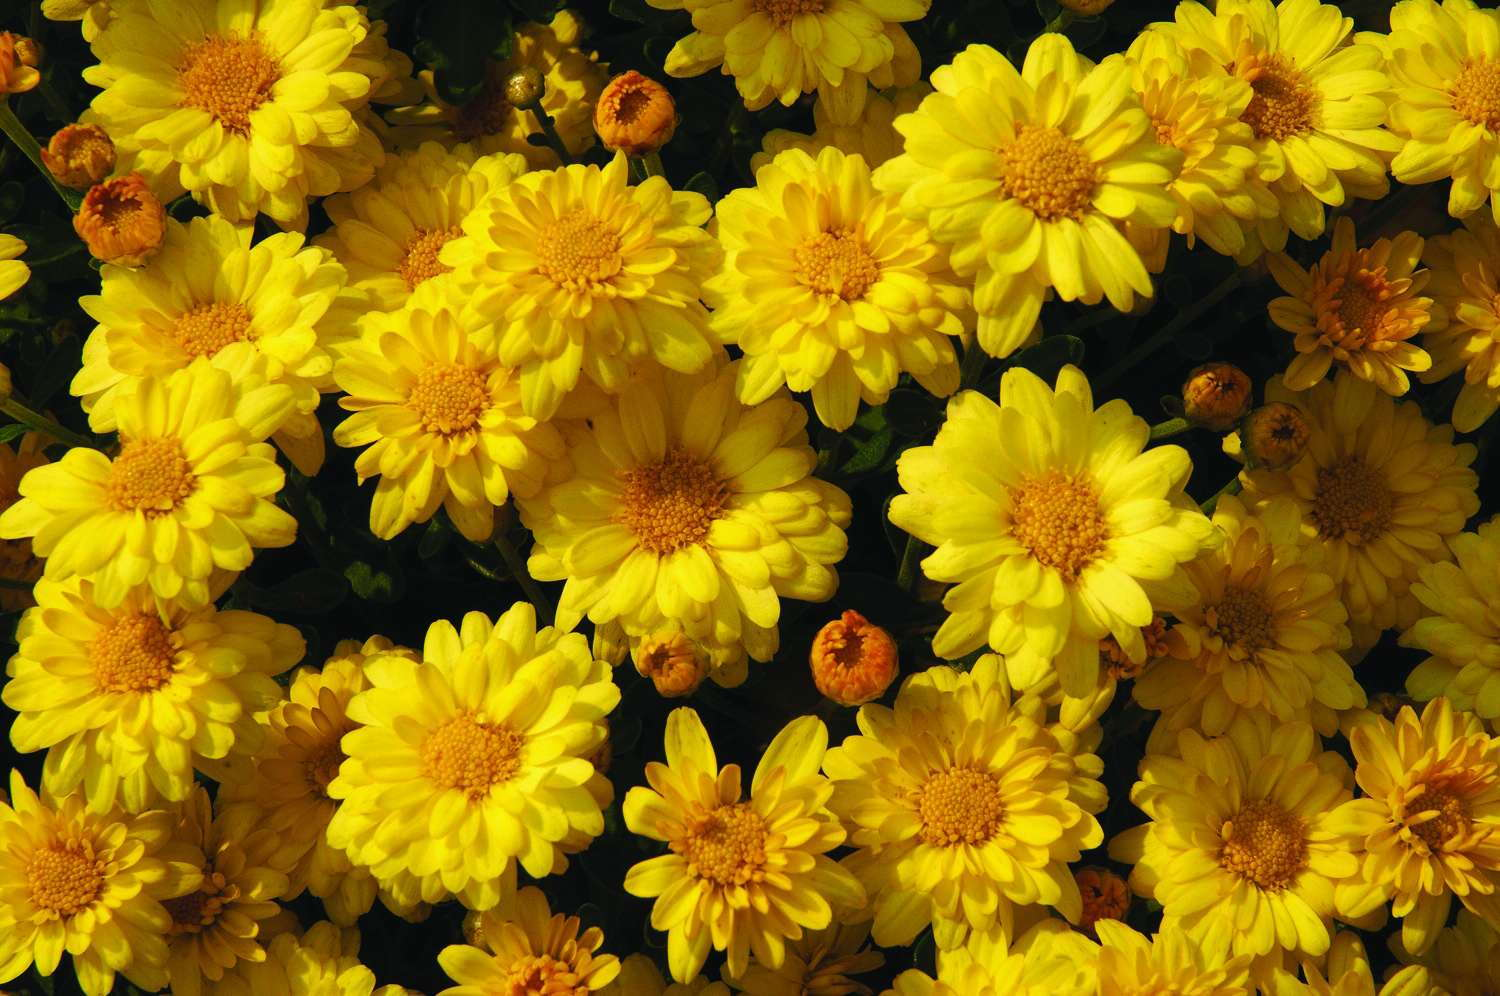 Chrysanthemum 'Sizzling Igloo' from Blooms Of Bressingham